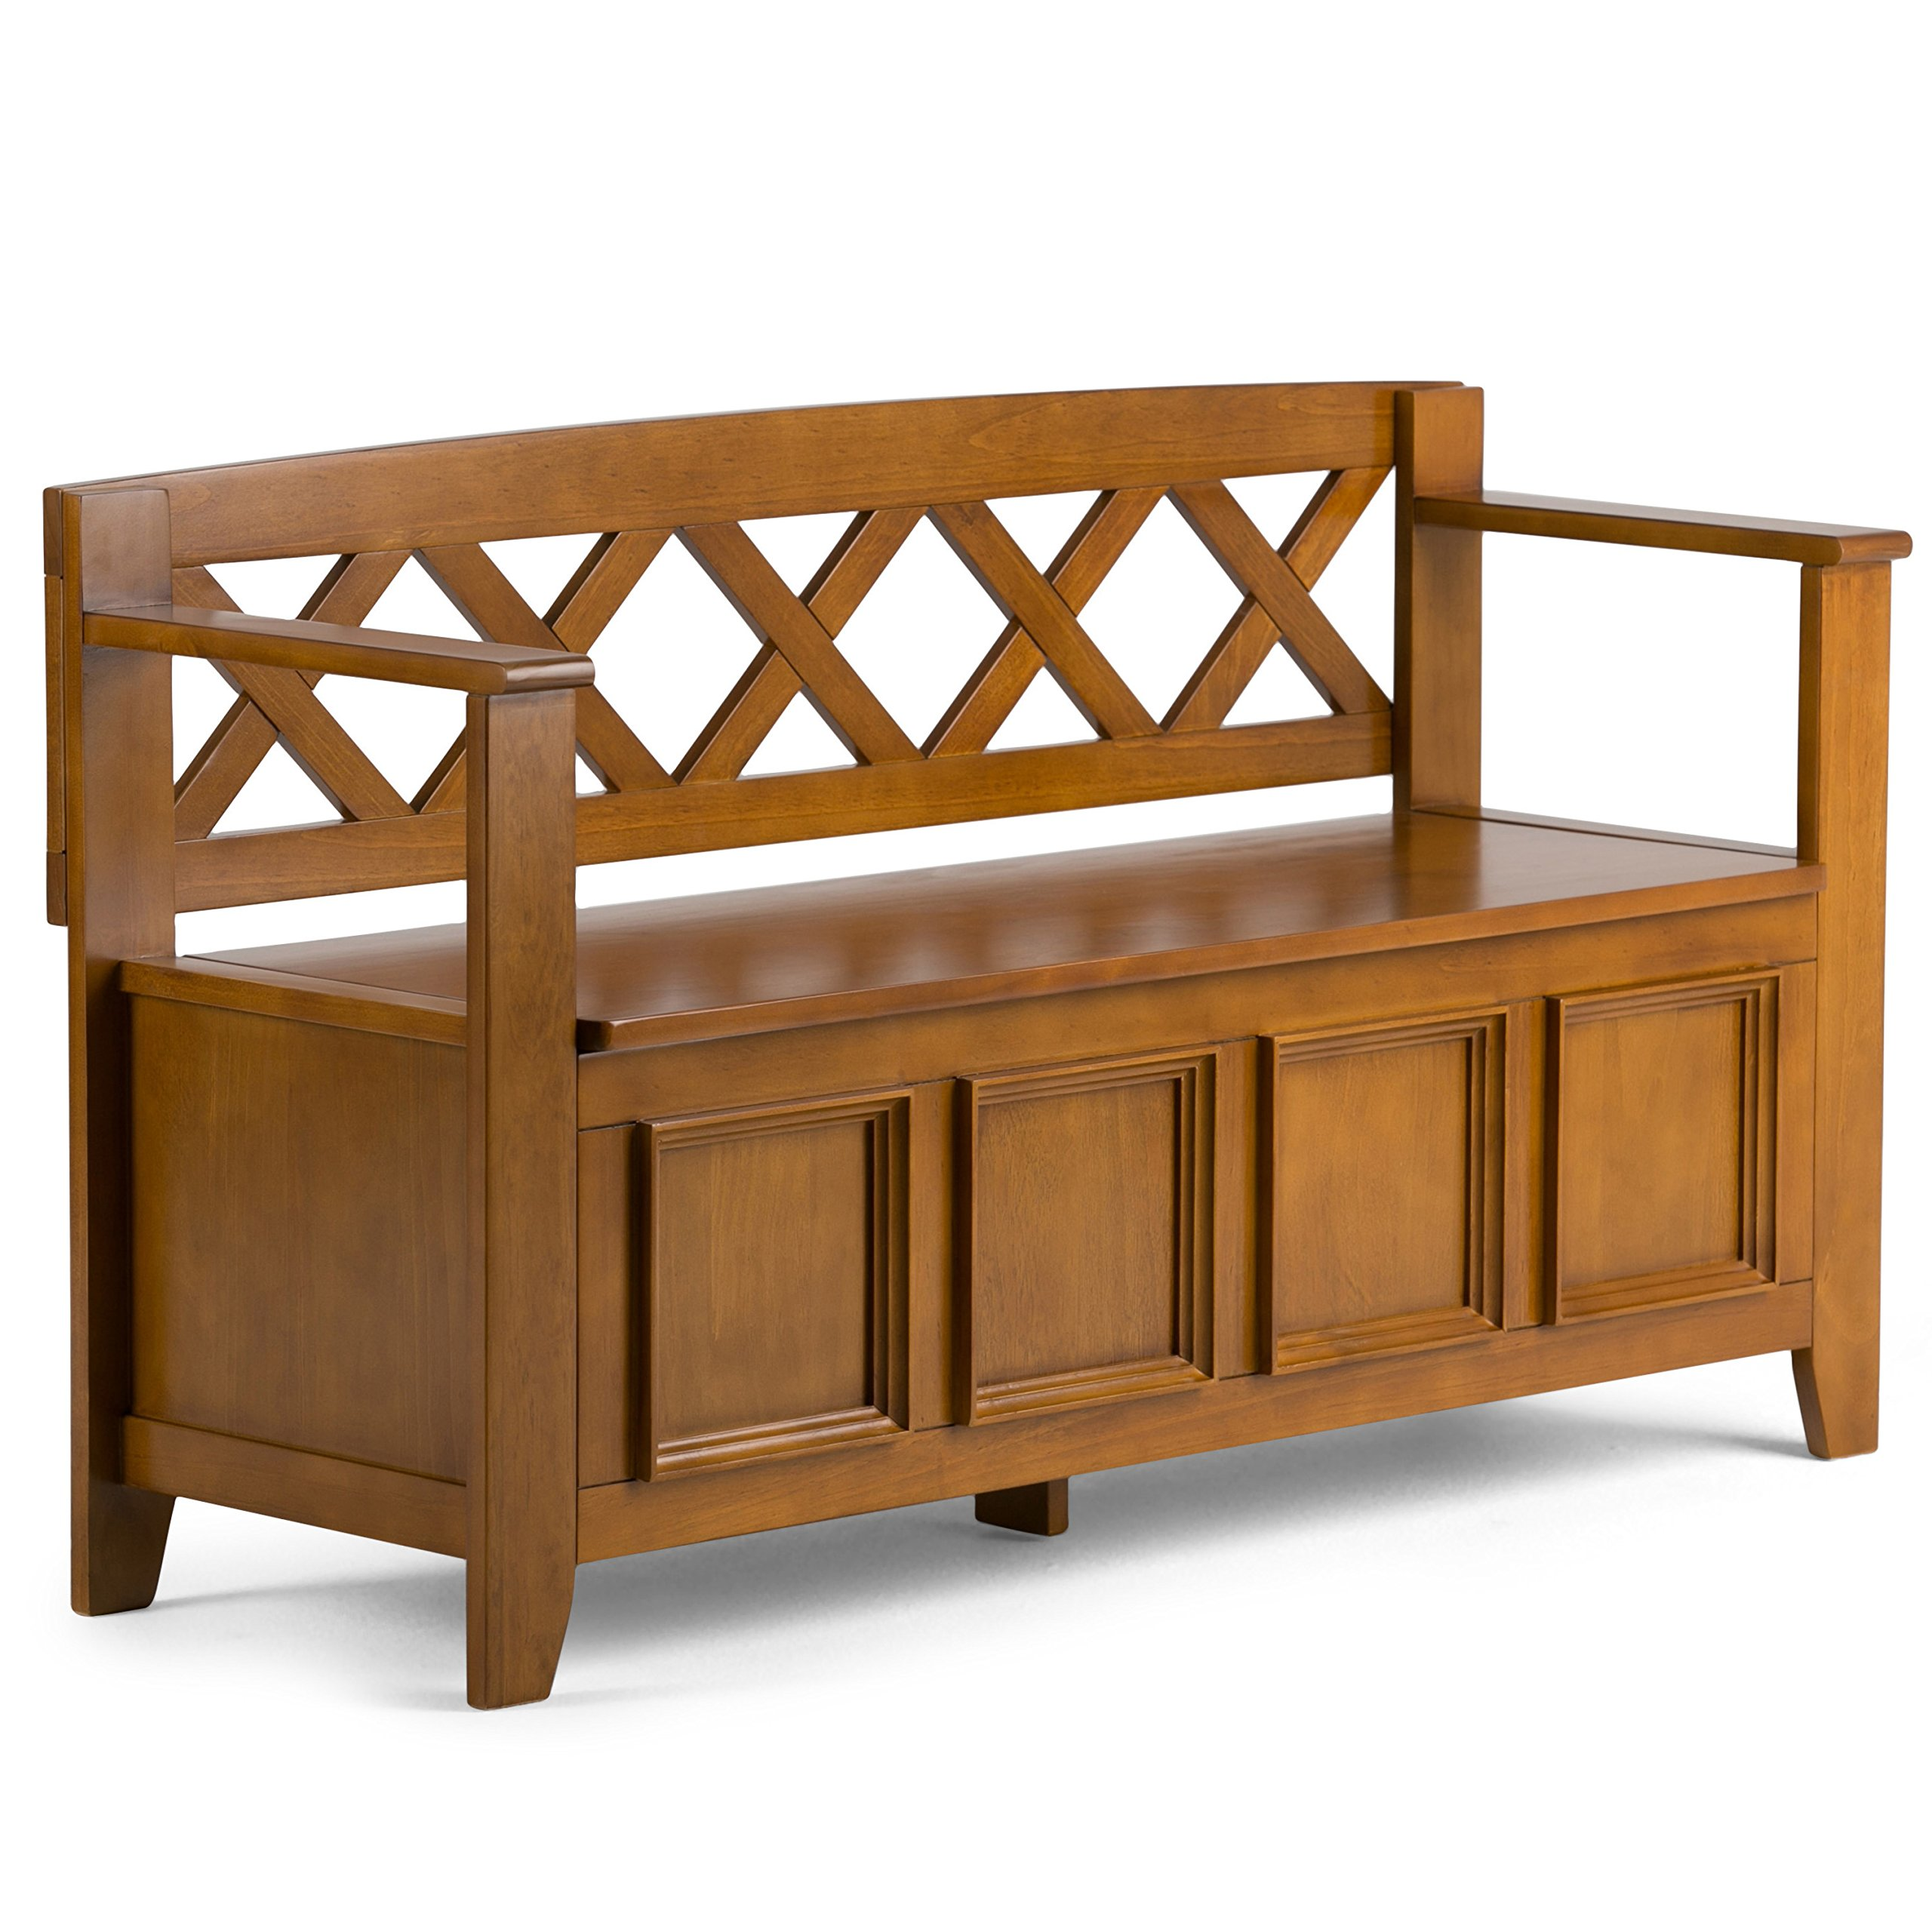 Simpli Home Amherst Solid Wood Entryway Storage Bench, Light Avalon Solid Wood Brown